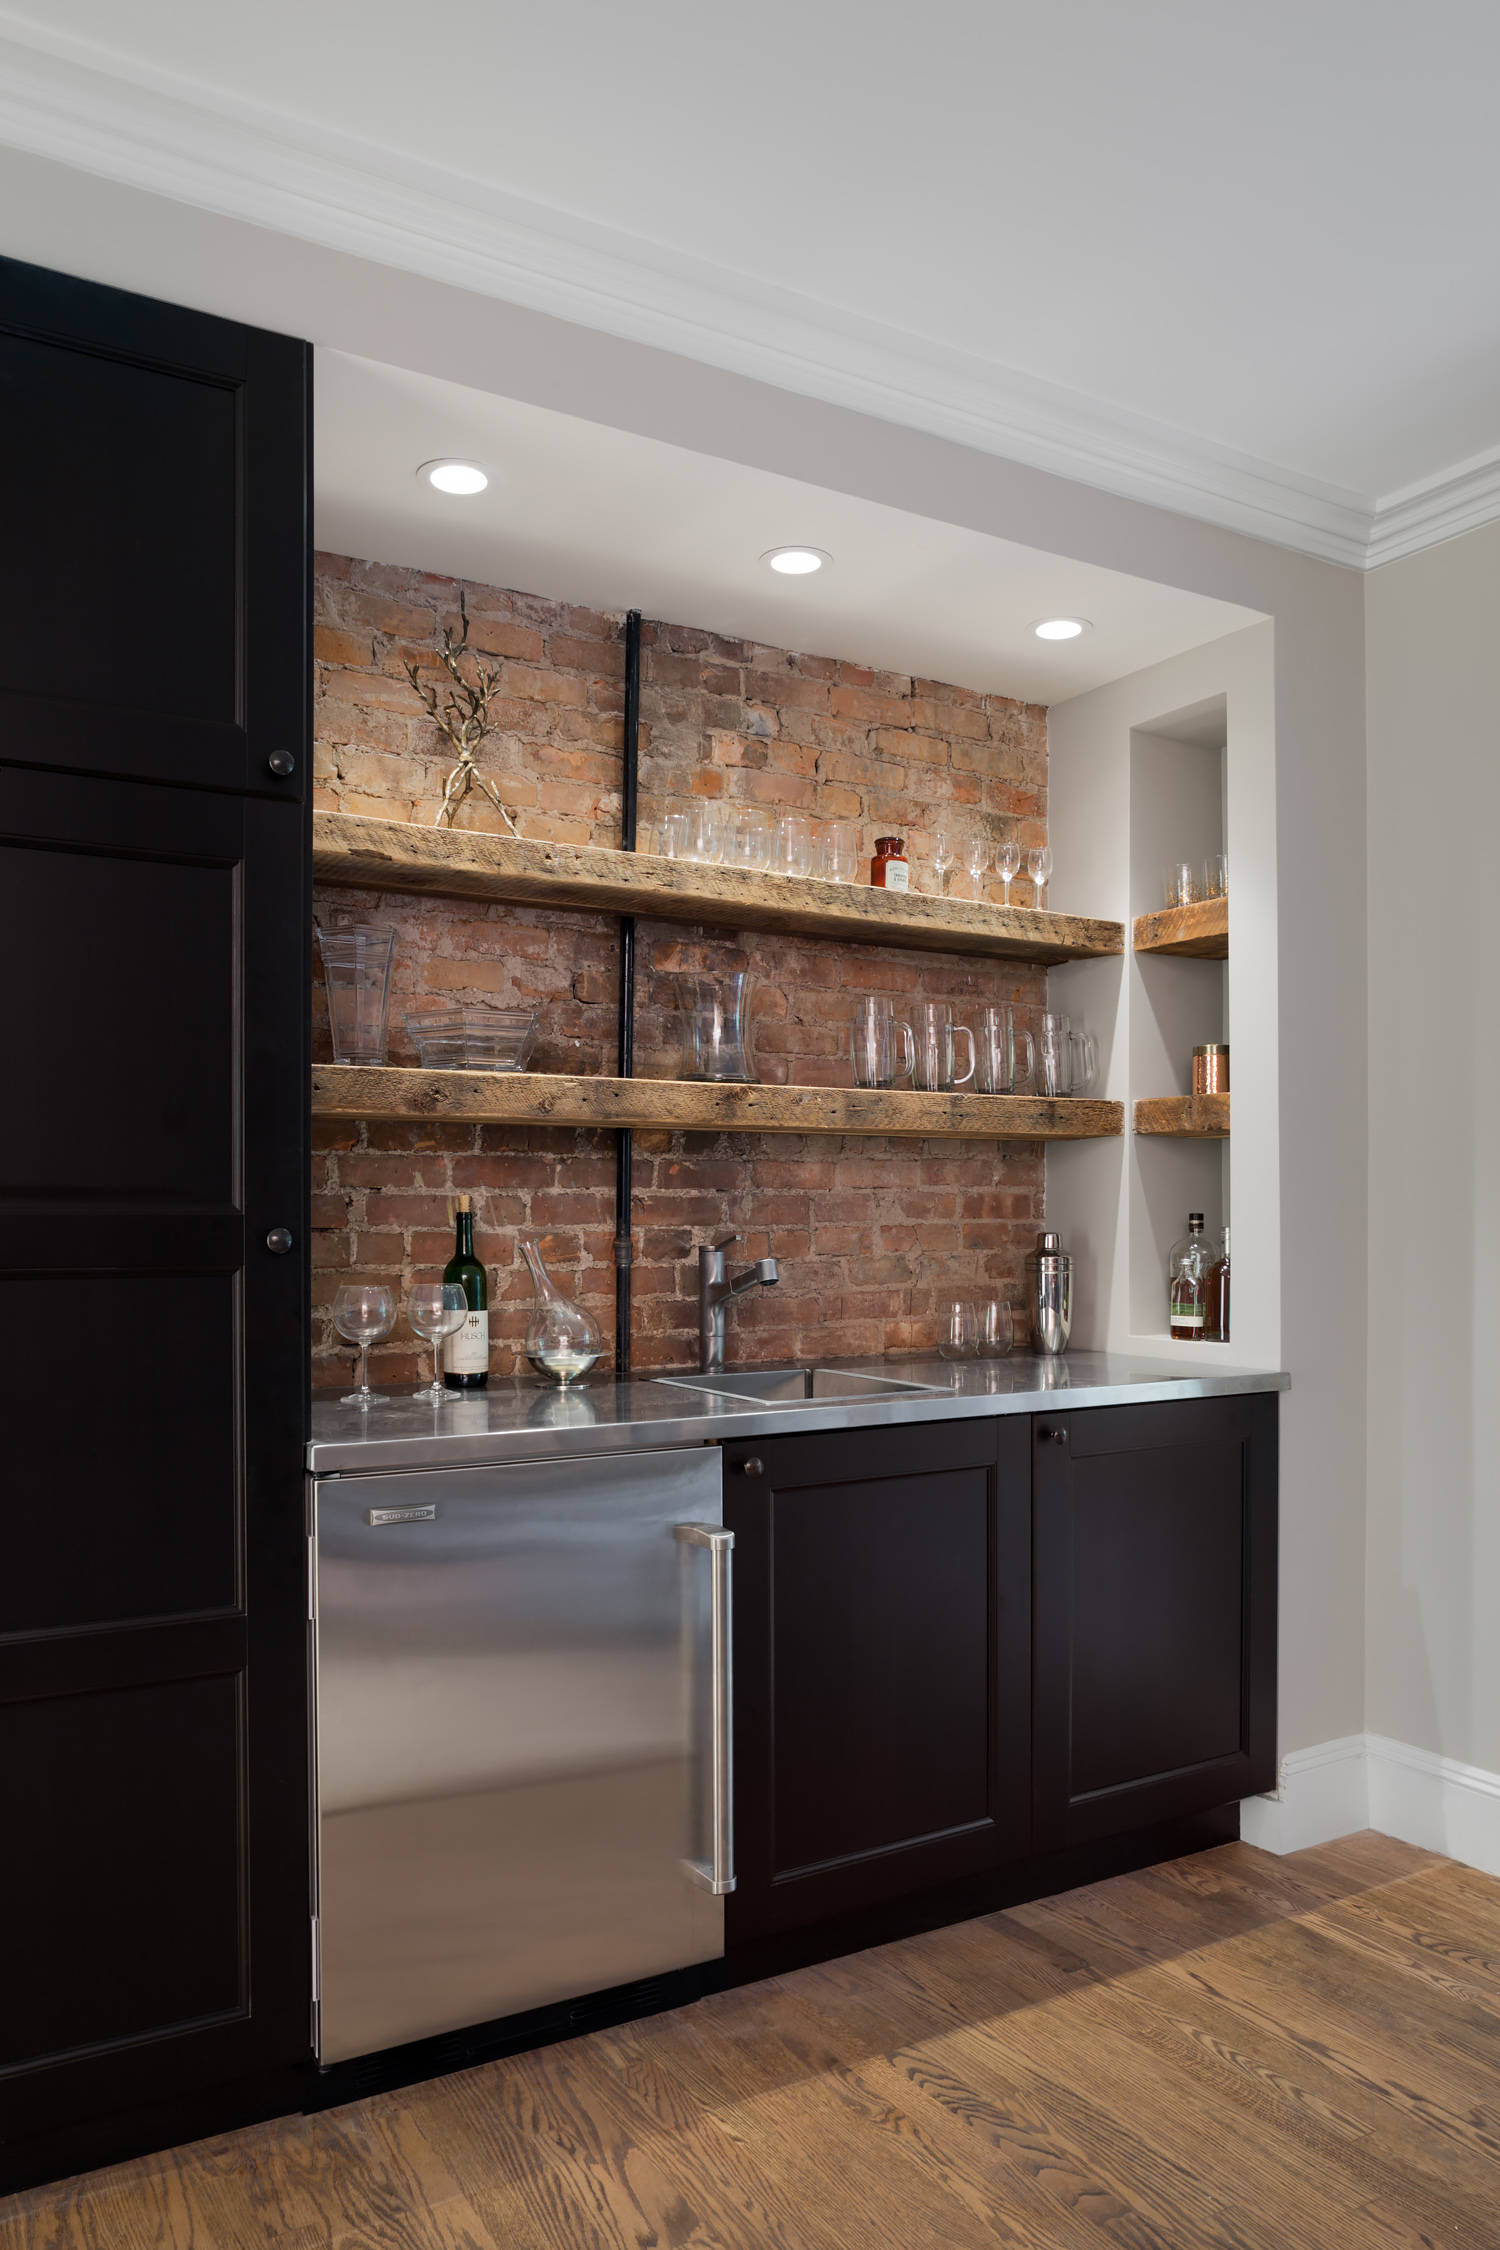 75 Beautiful Home Bar Pictures Ideas November 2020 Houzz